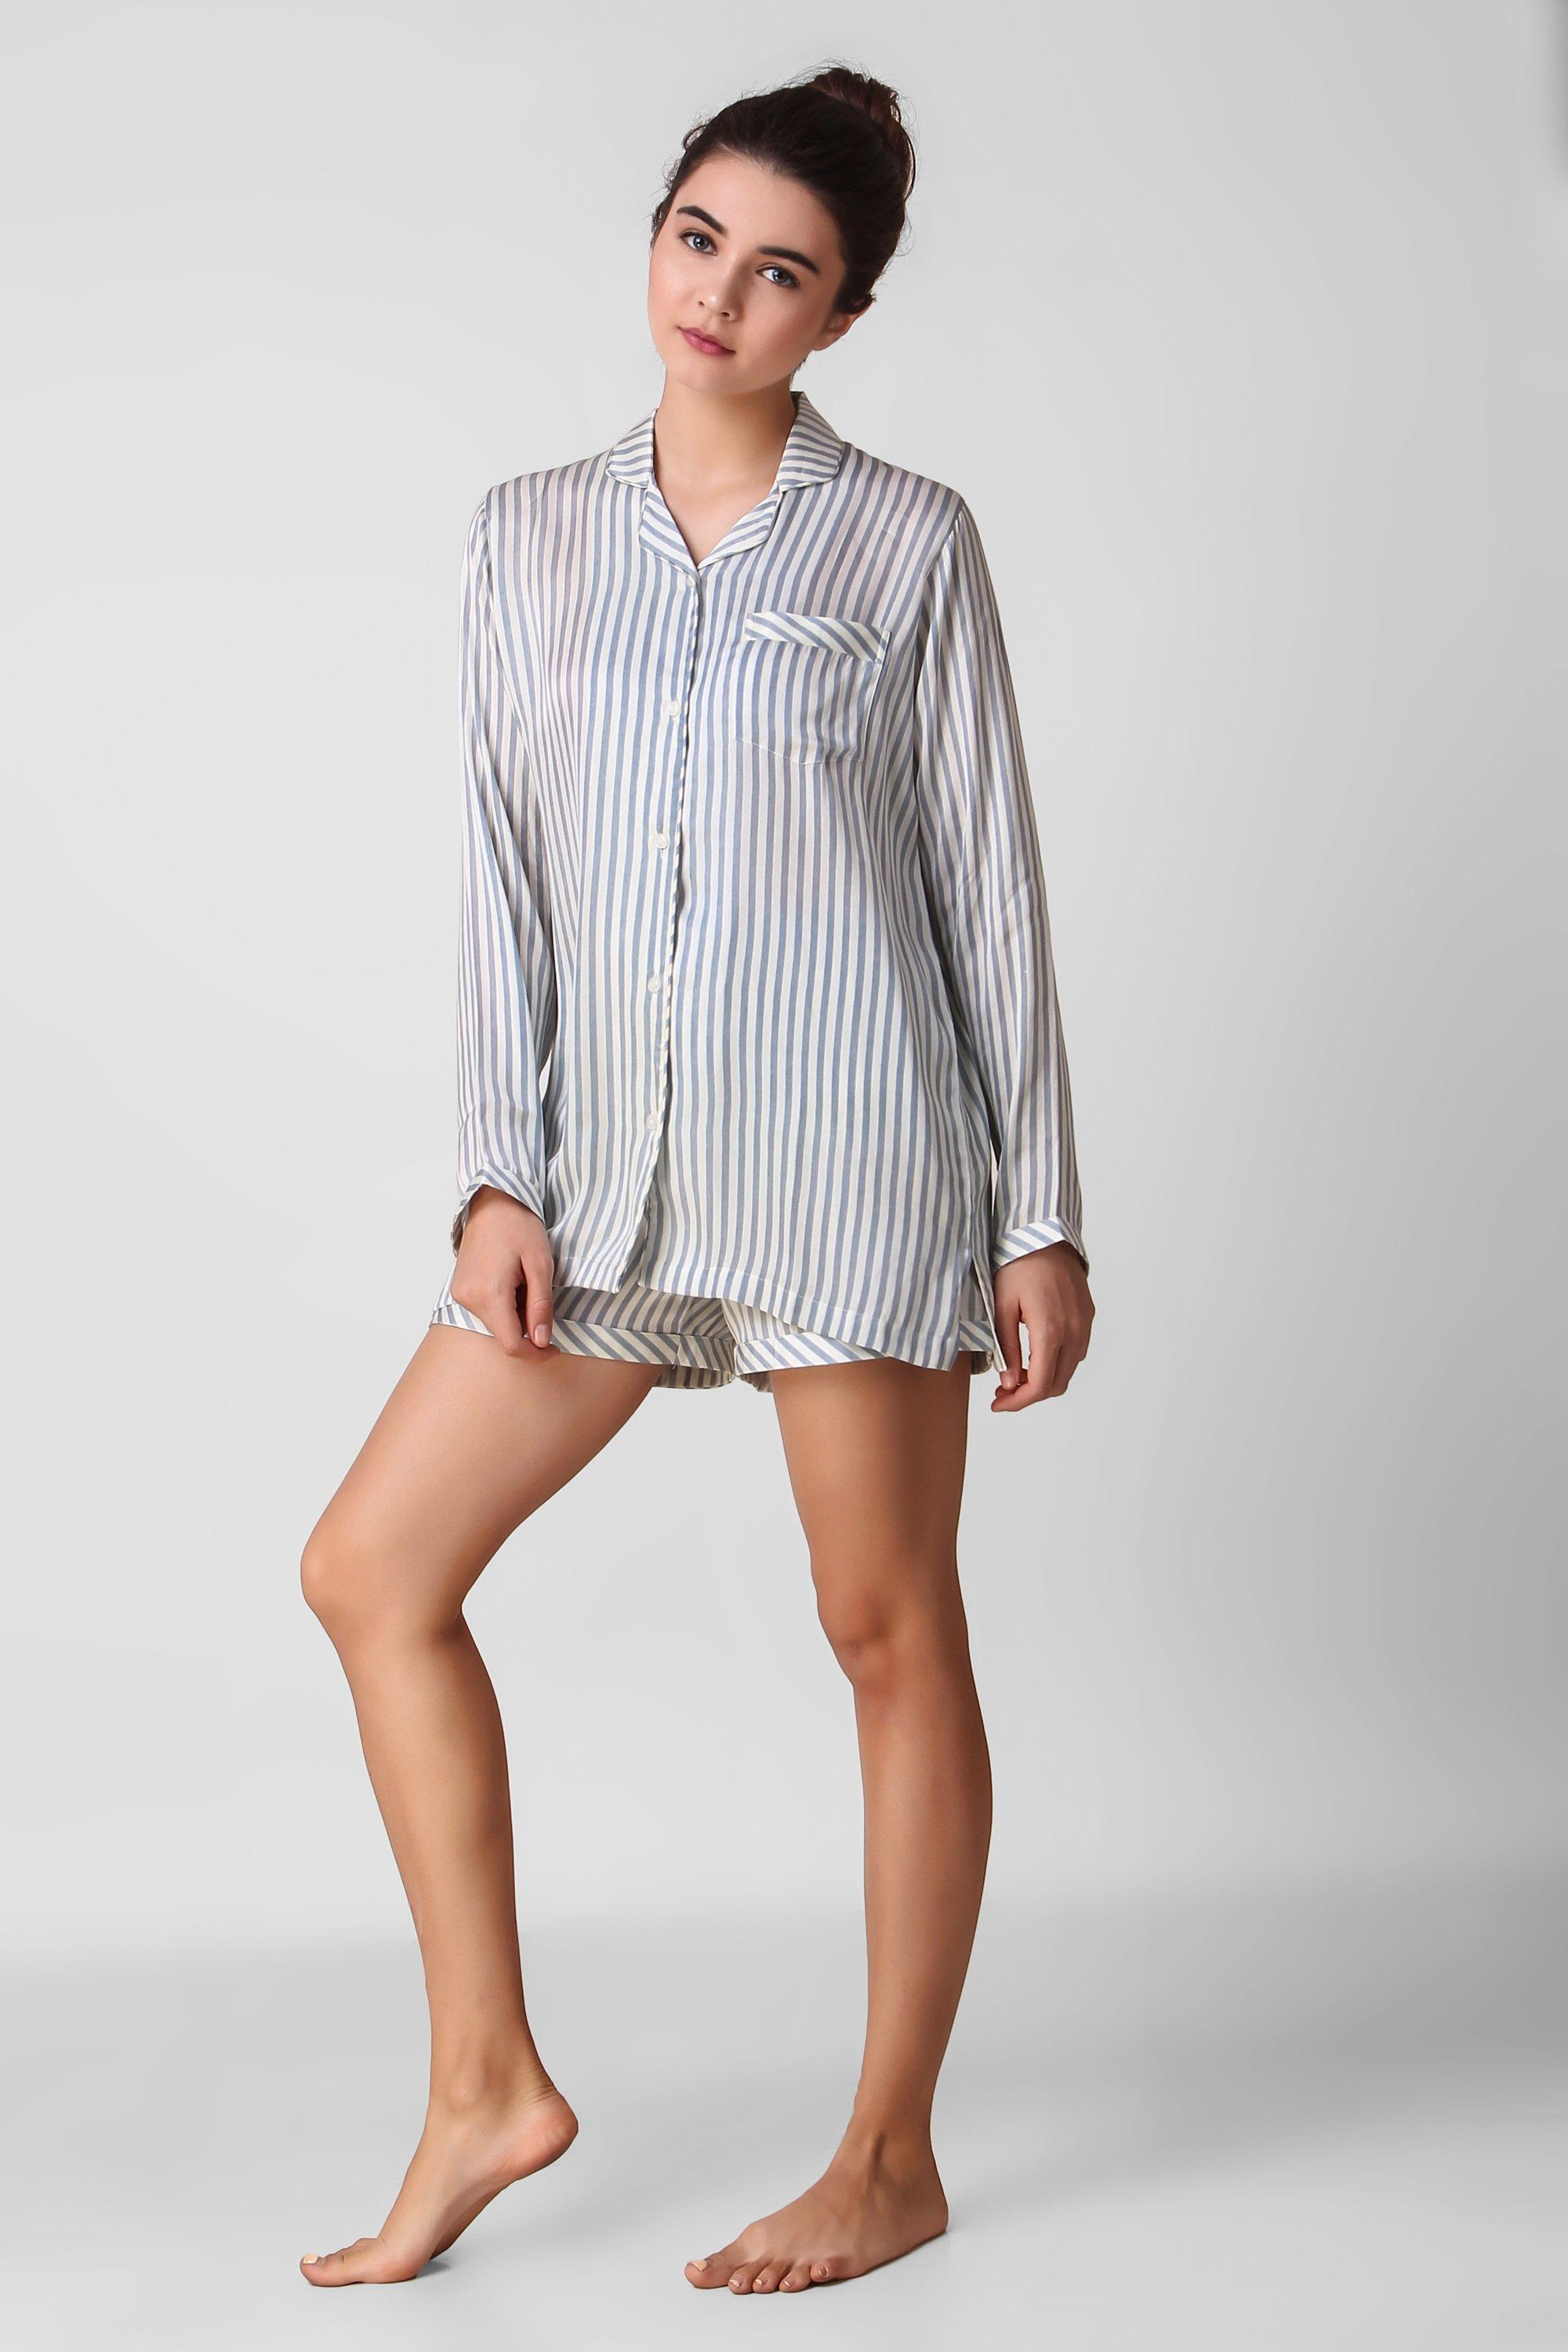 Home Night Suits Sleepwear With Shorts